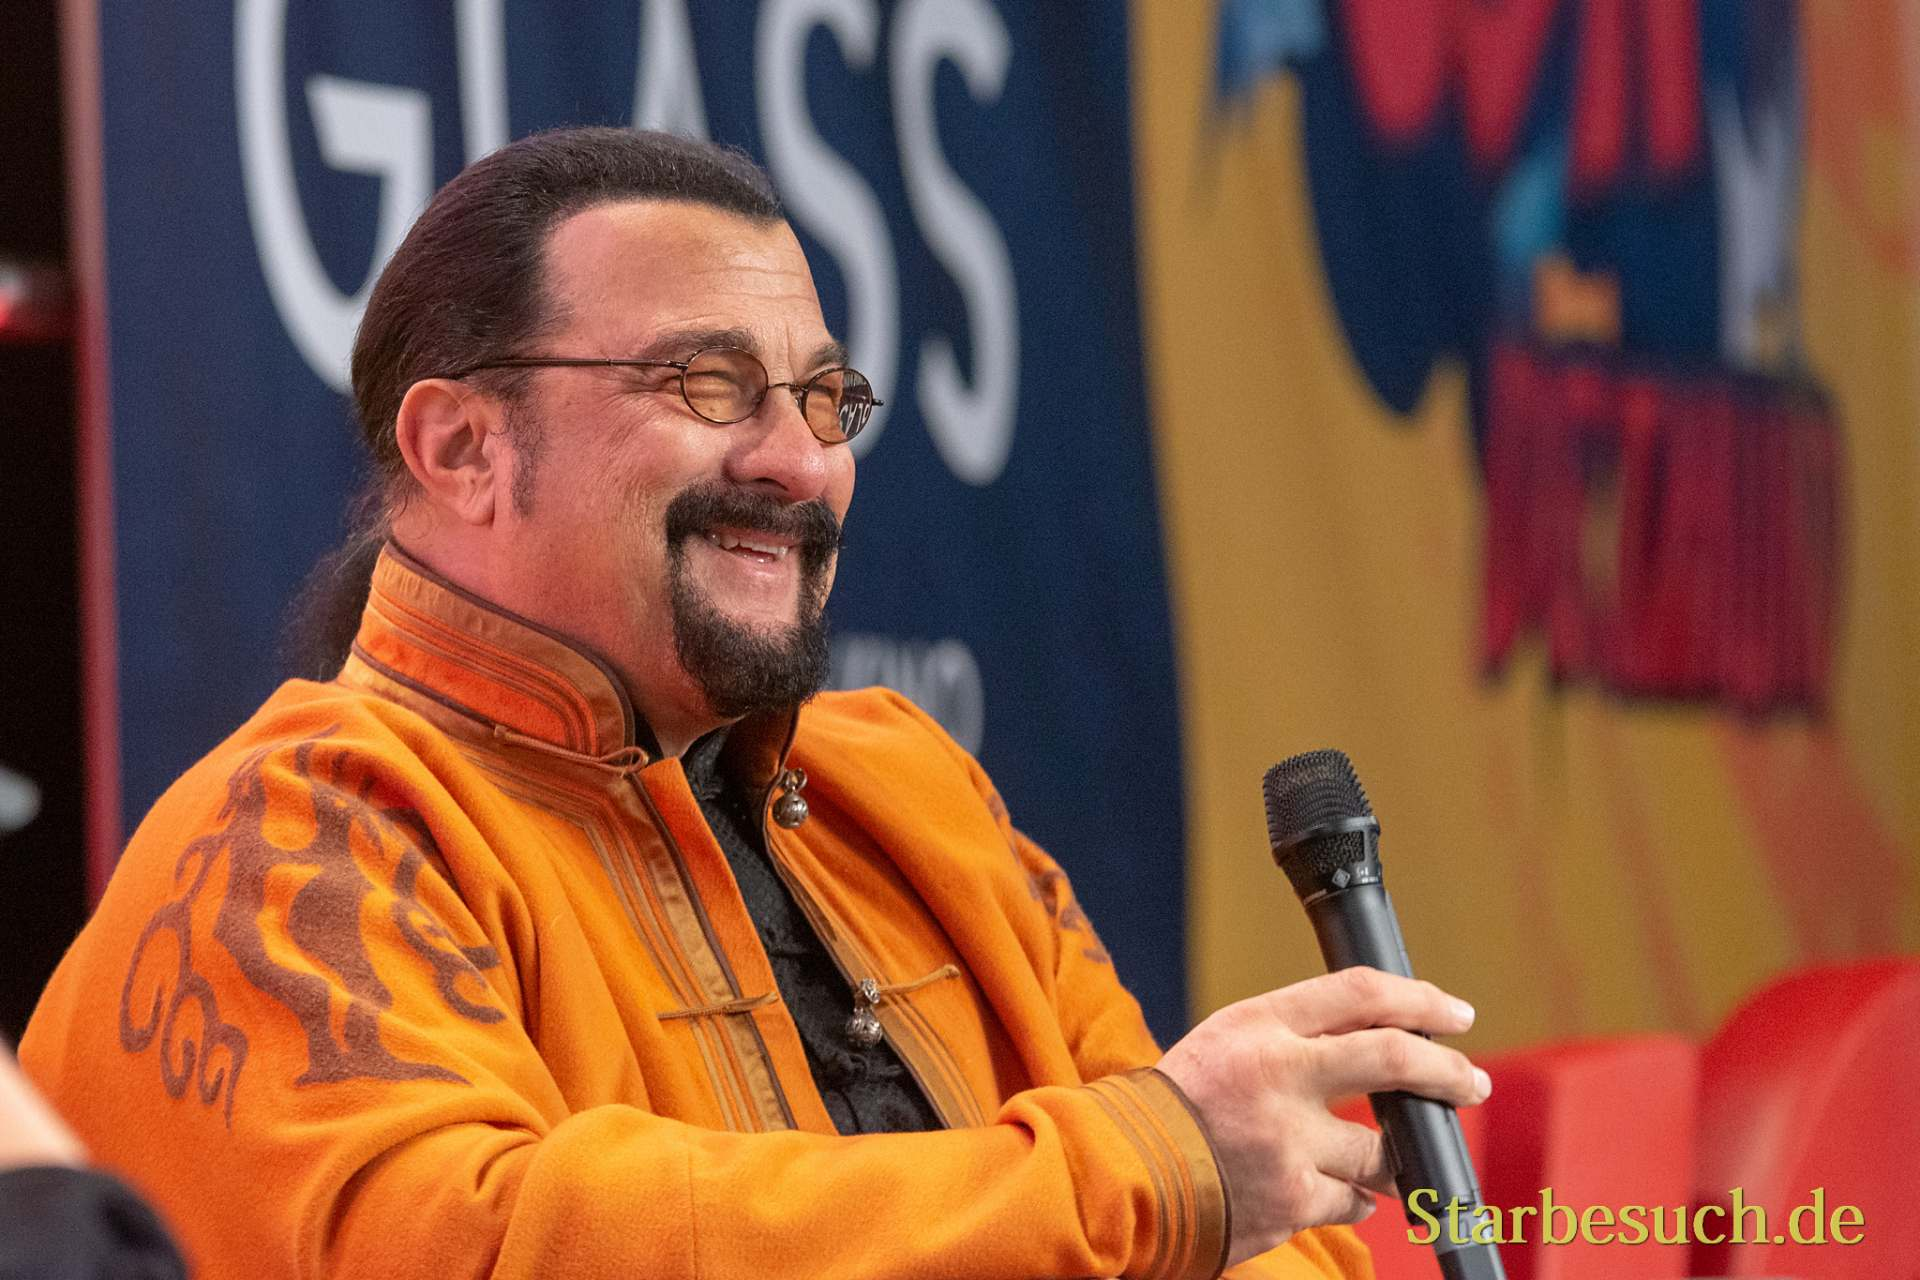 DORTMUND, GERMANY - December 1st 2018: Steven Seagal (*1952, American actor, martial artist, and film producer) at German Comic Con Dortmund, a two day fan convention